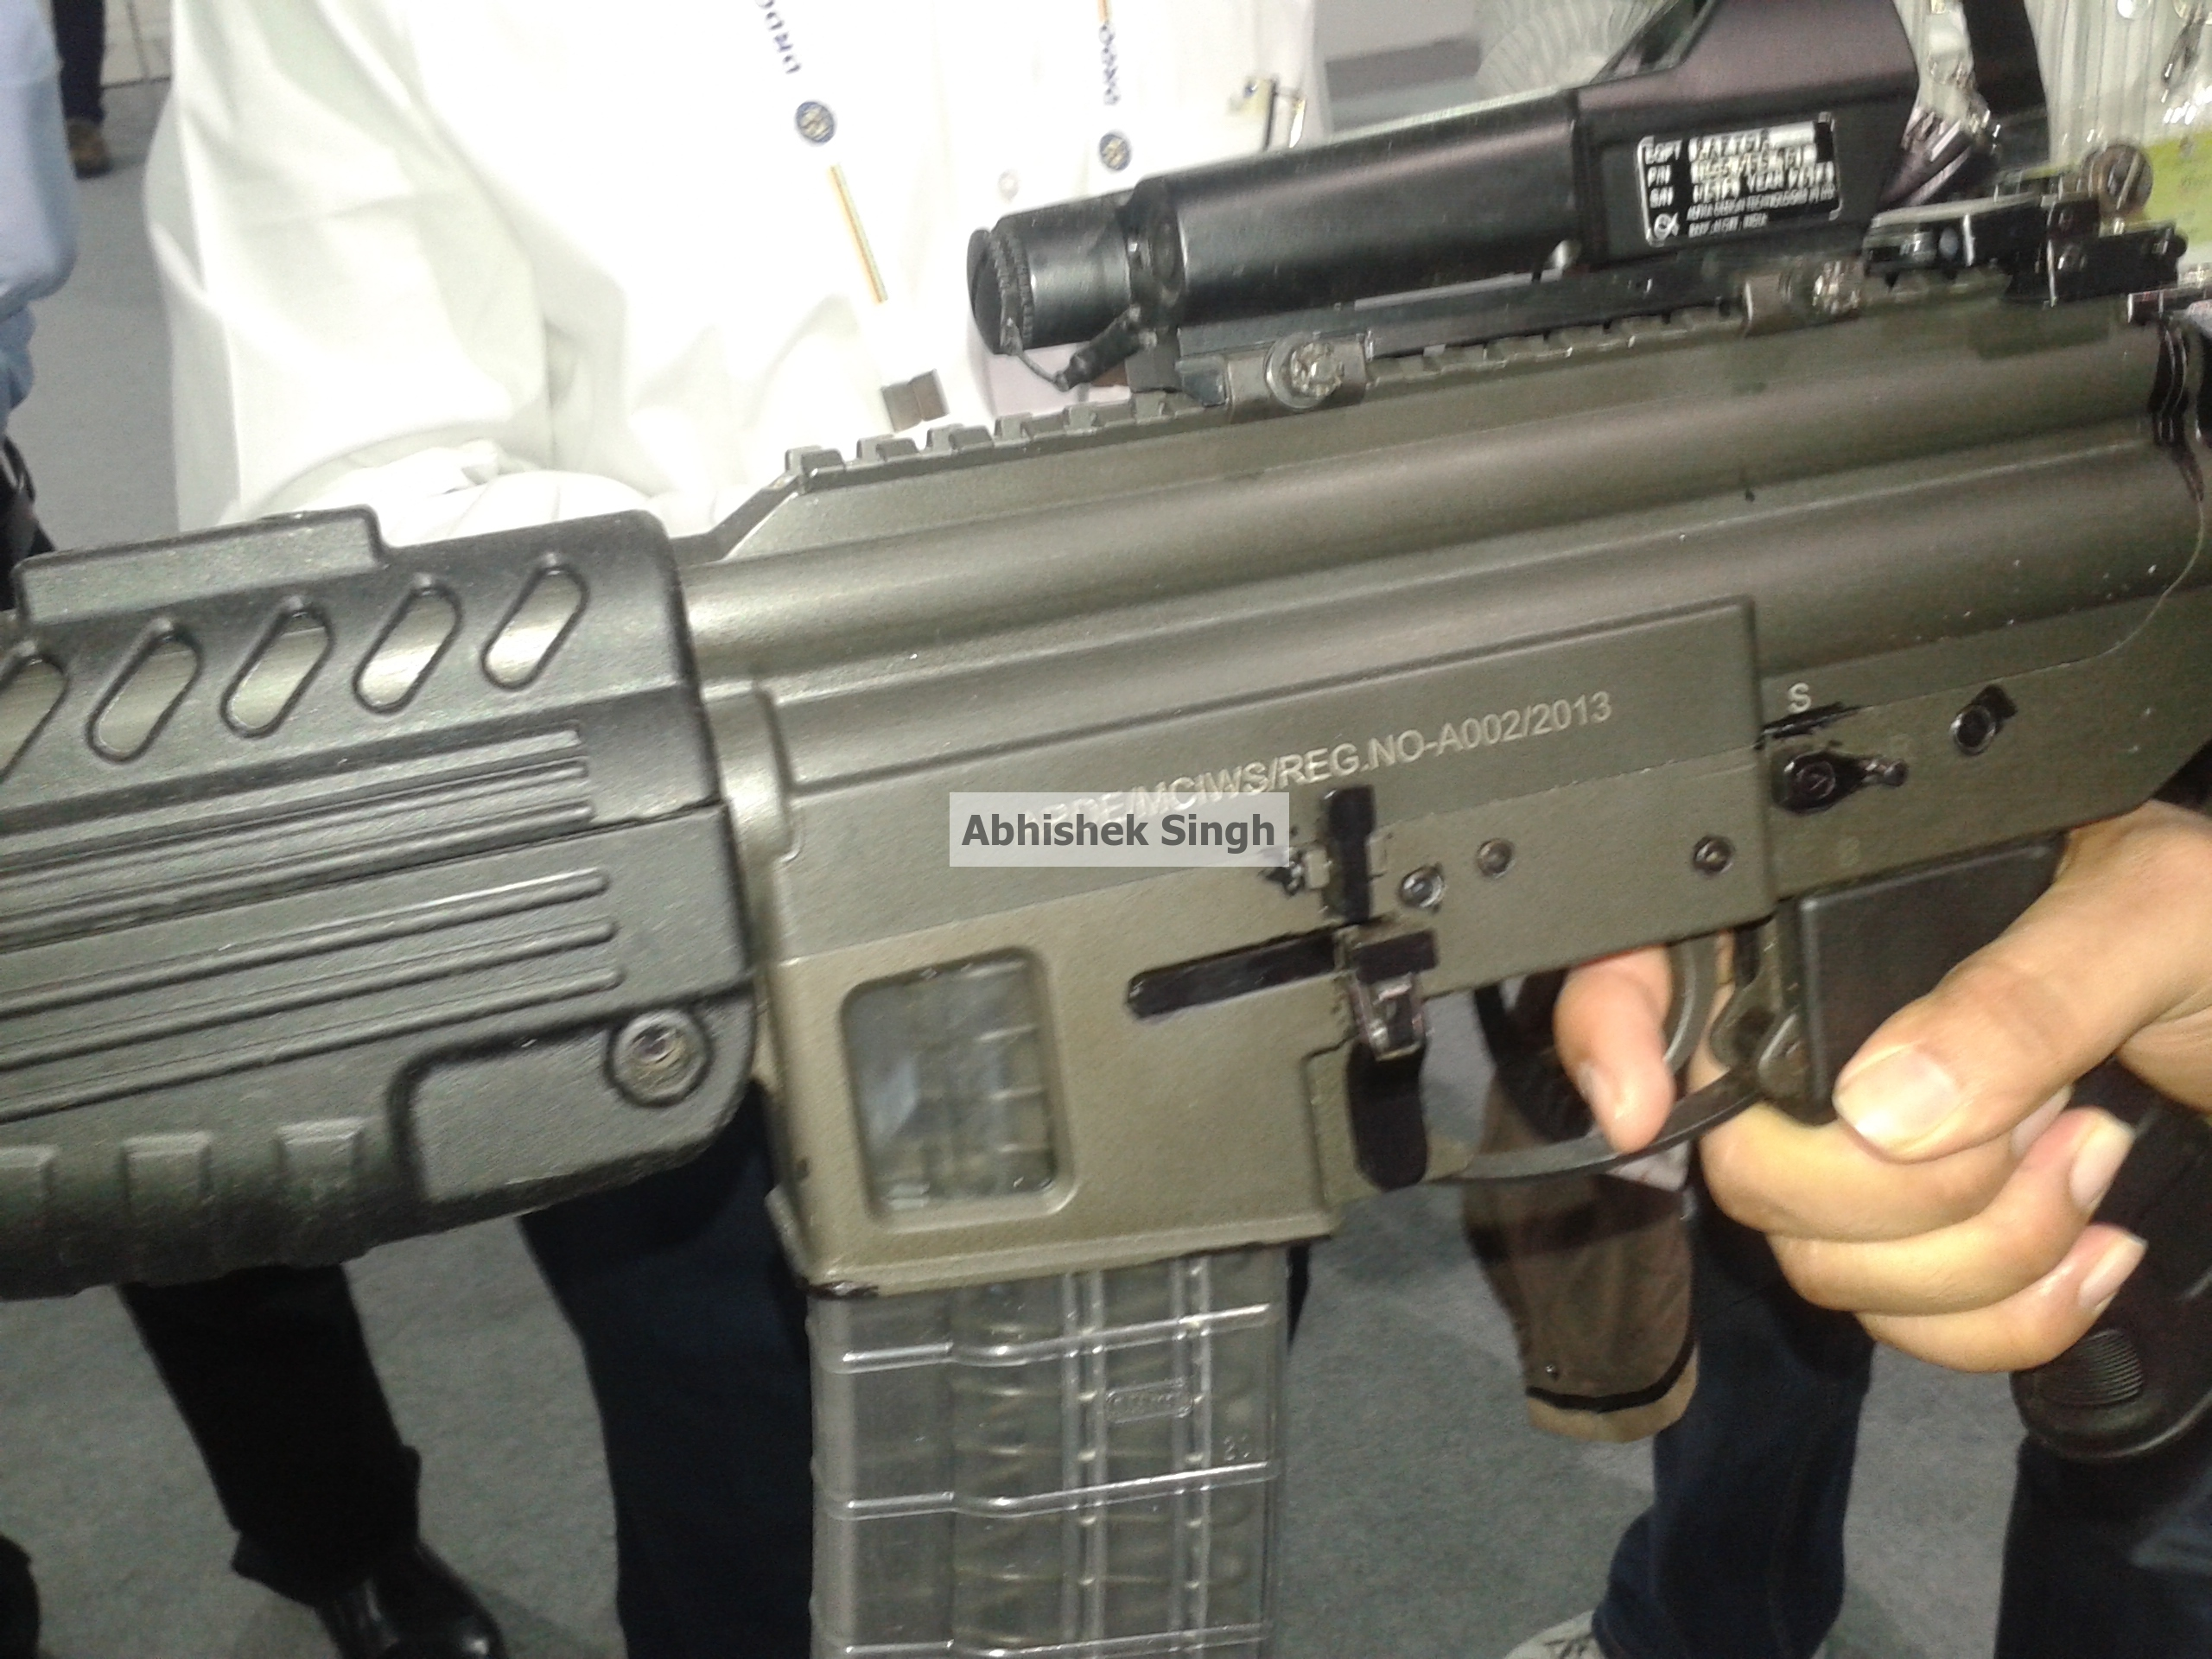 Drdo multical rifle unveiled page 7 -  Img